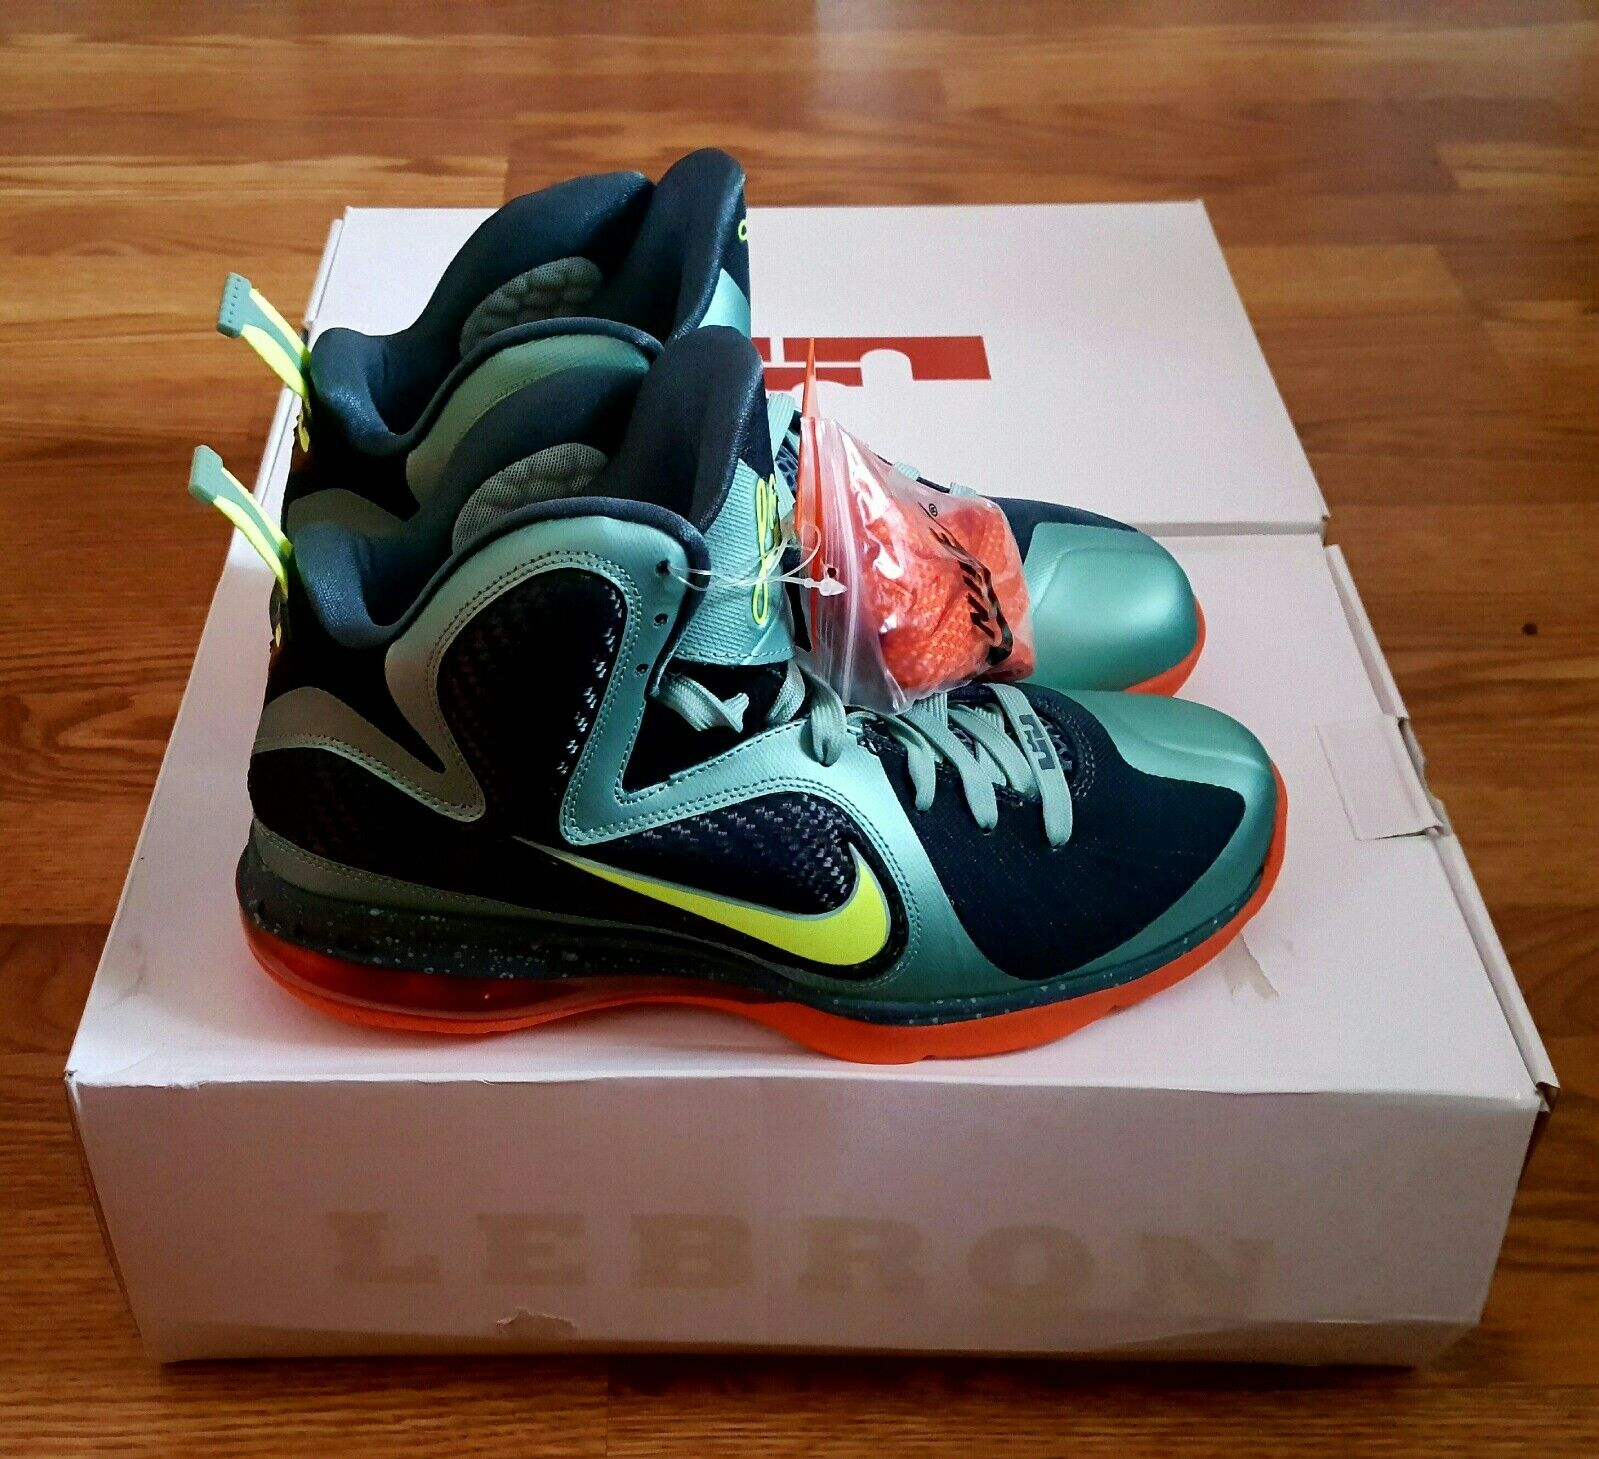 NIKE LEBRON 9/MIAMI ORANGE/ HURRICANES INSPIRED/ CANNON VOLT SLATE BLUE ORANGE/ 9/MIAMI SZ, 9.5 e864ba